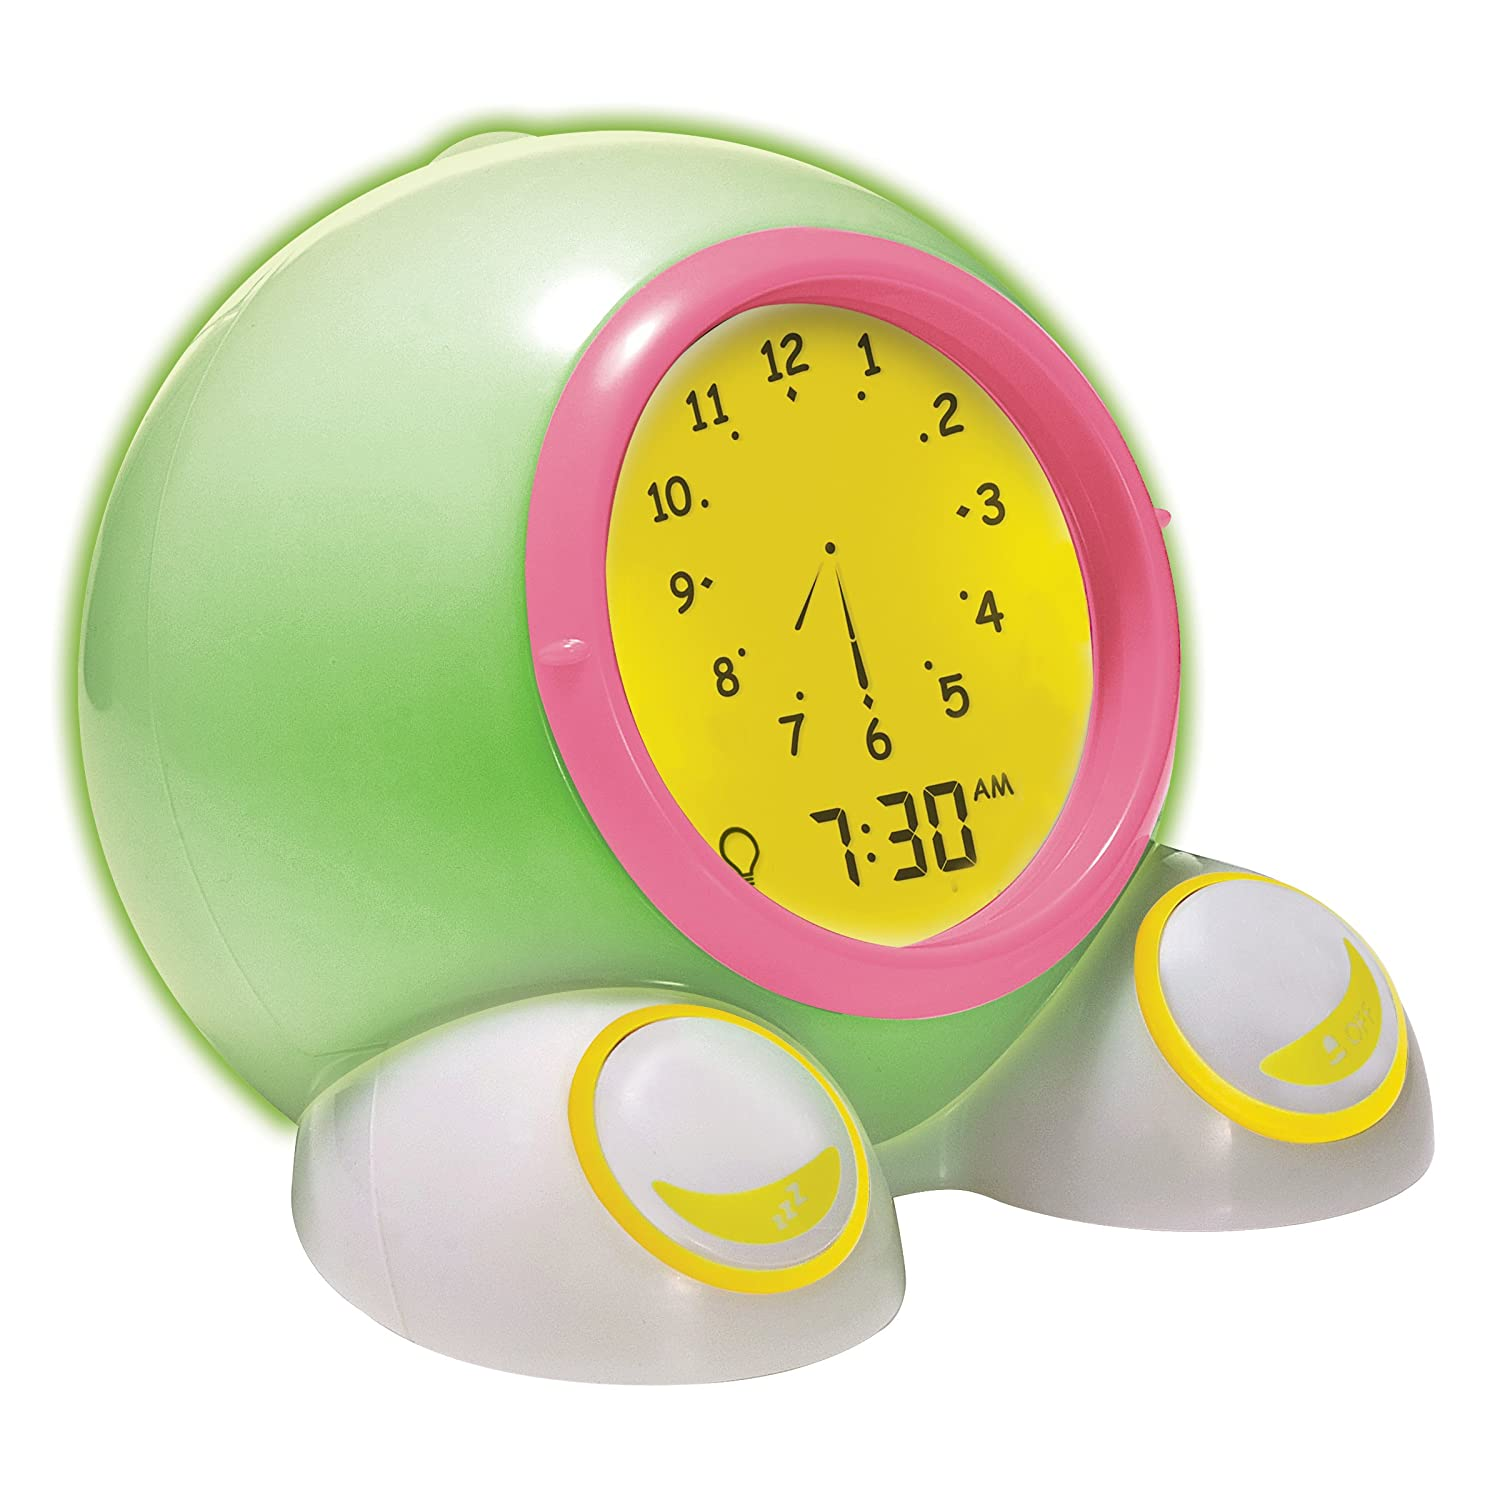 Mirari Teach Me Time Talking Alarm Clock Night Light Is Provided To This Circuit The Starts From 00 Home Kitchen